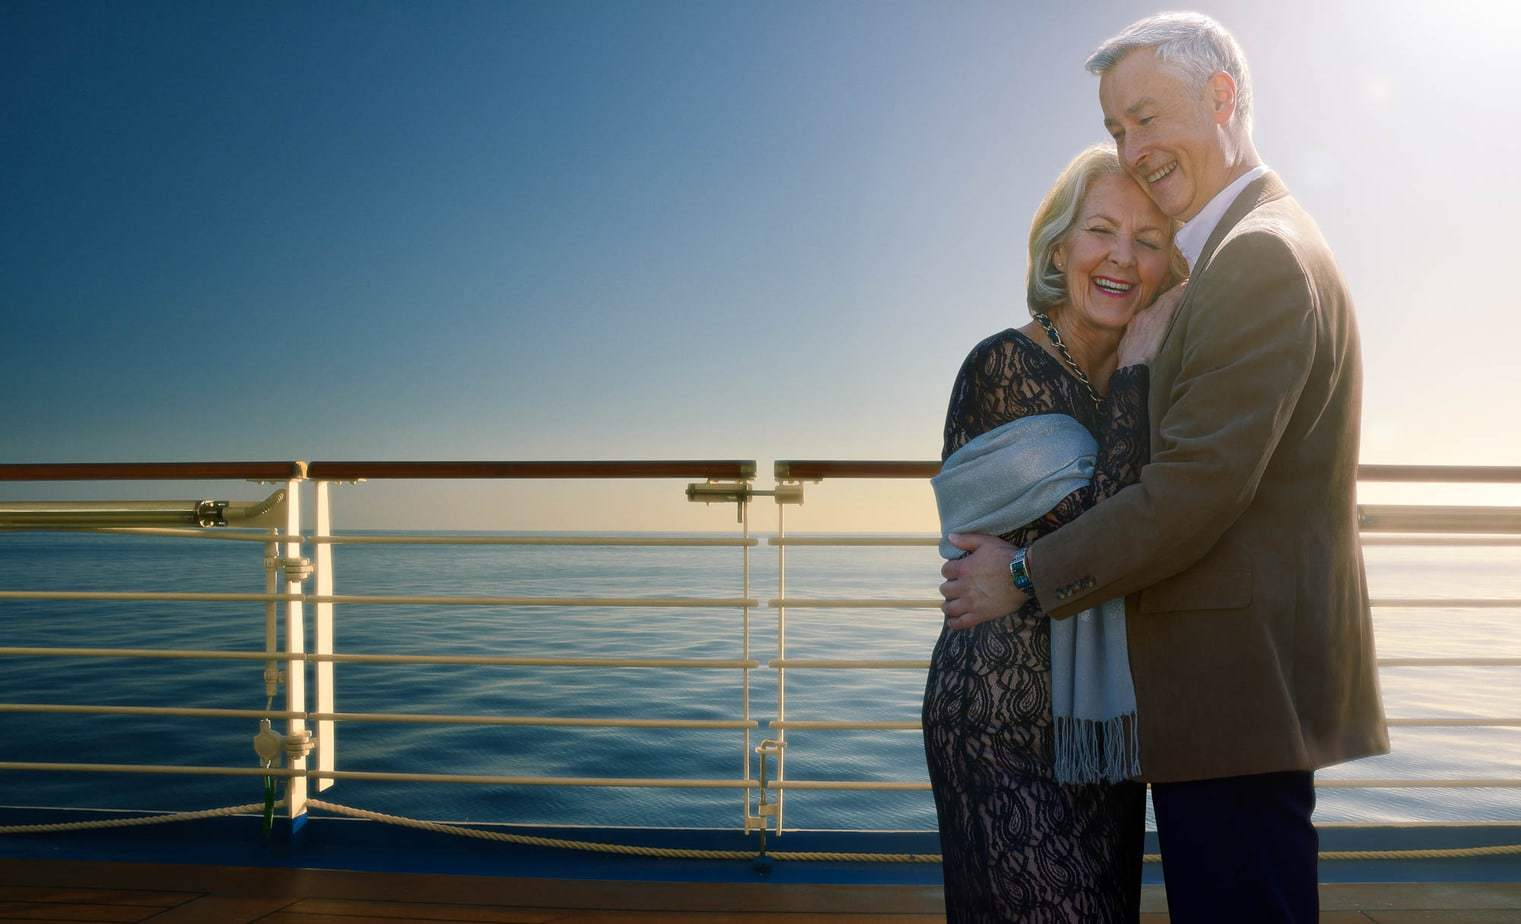 Mature-couple-evening-embracing-cruise-ship-lifestyle-photography